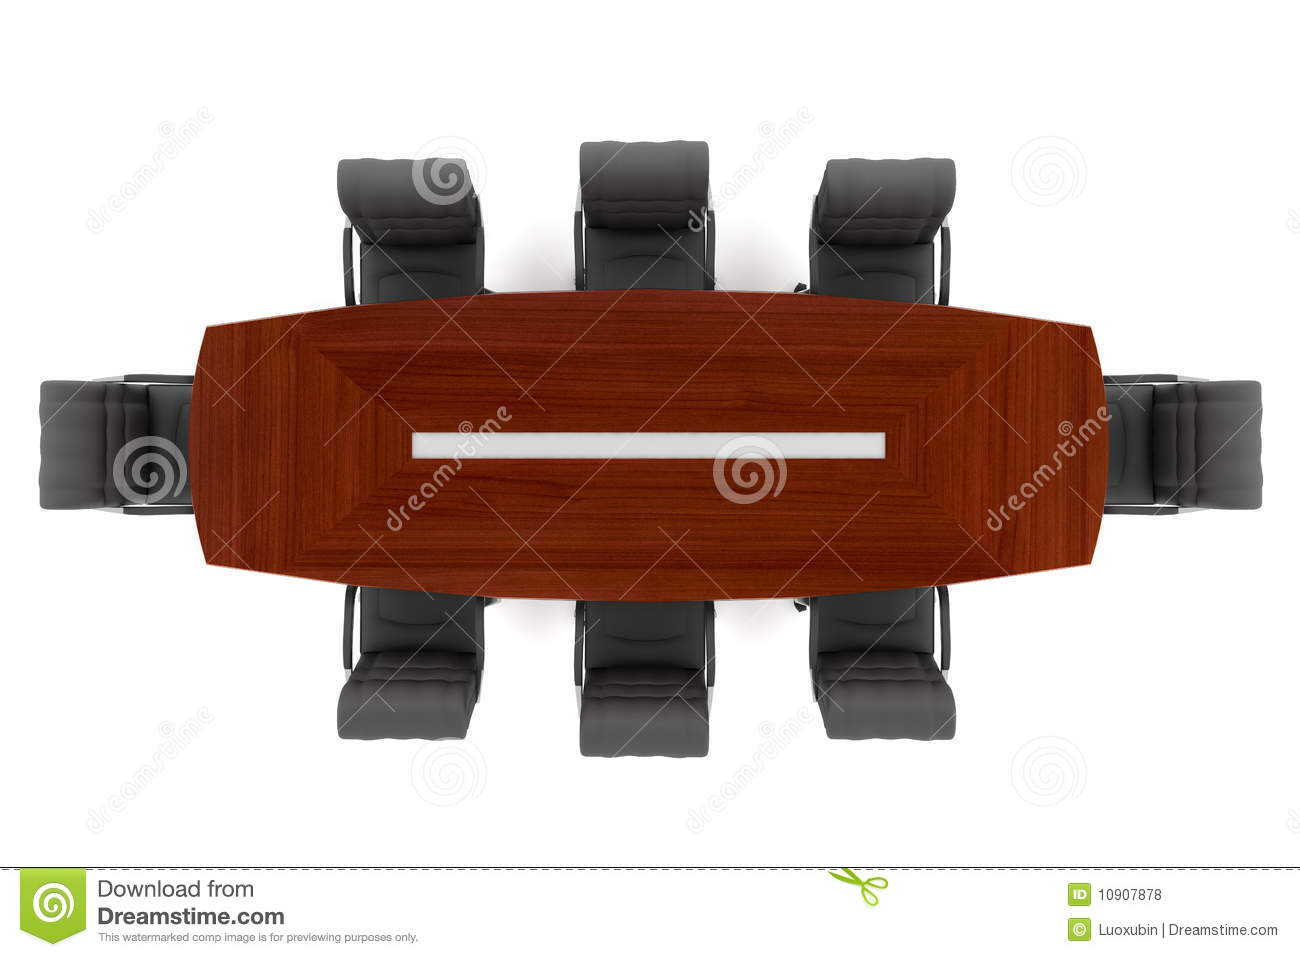 sell office chairs cabriole leg dining conference table and royalty free stock photos - image: 10907878